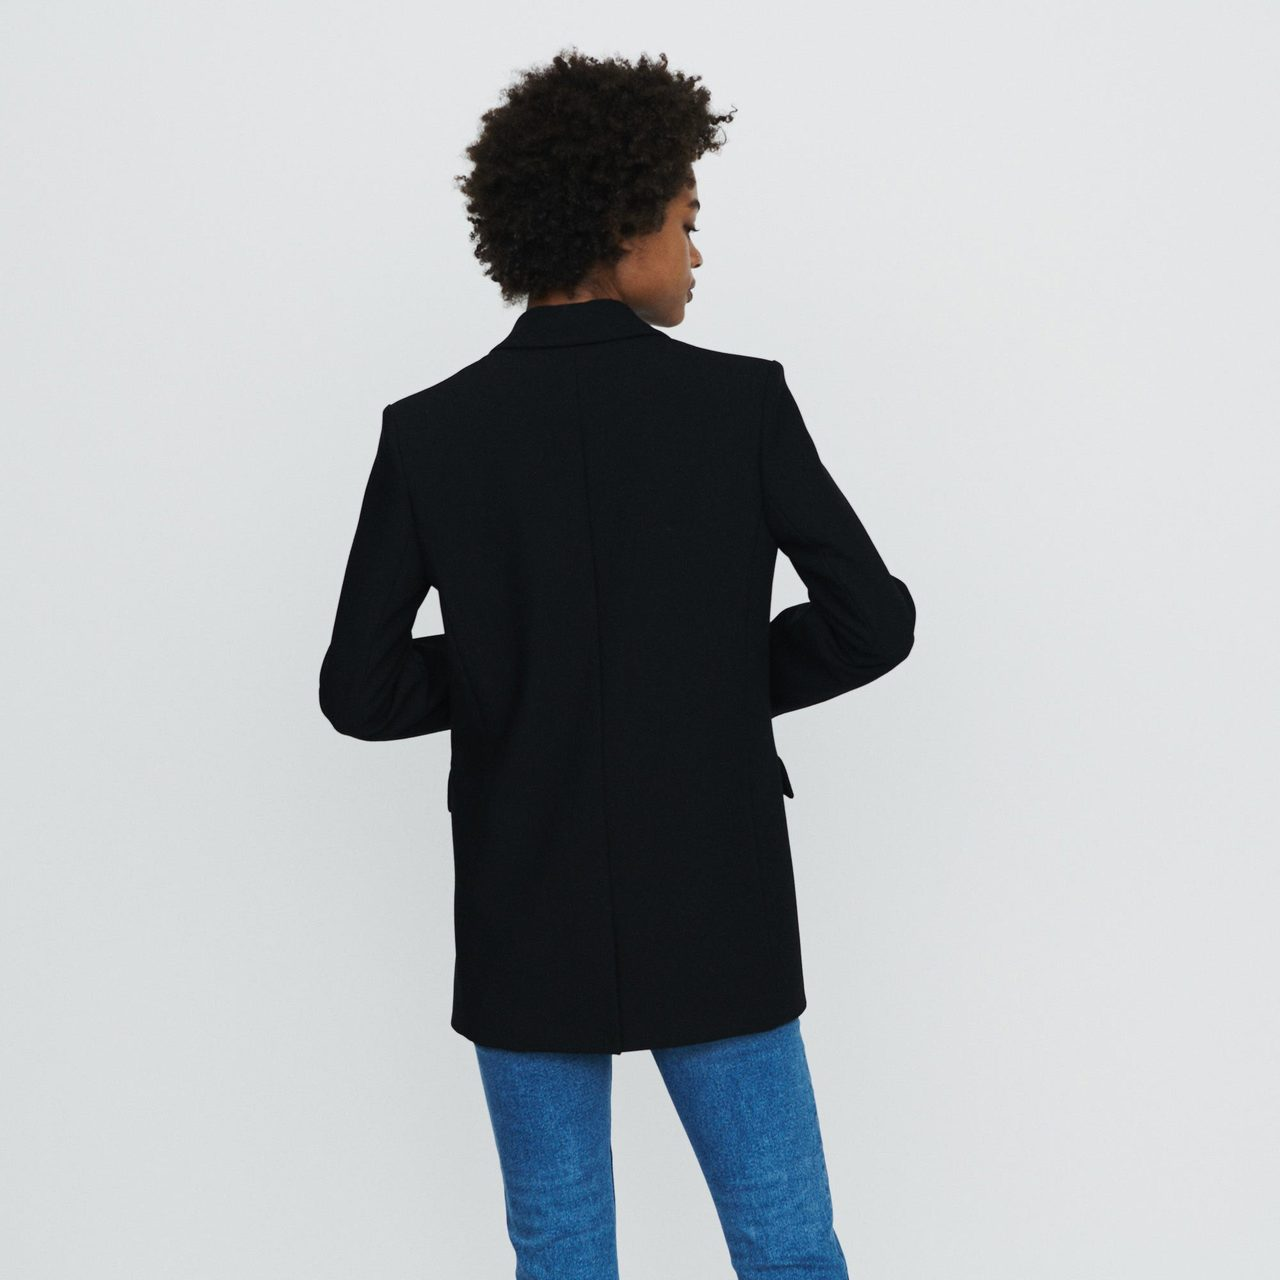 Suit Jacket With Buttons - Black